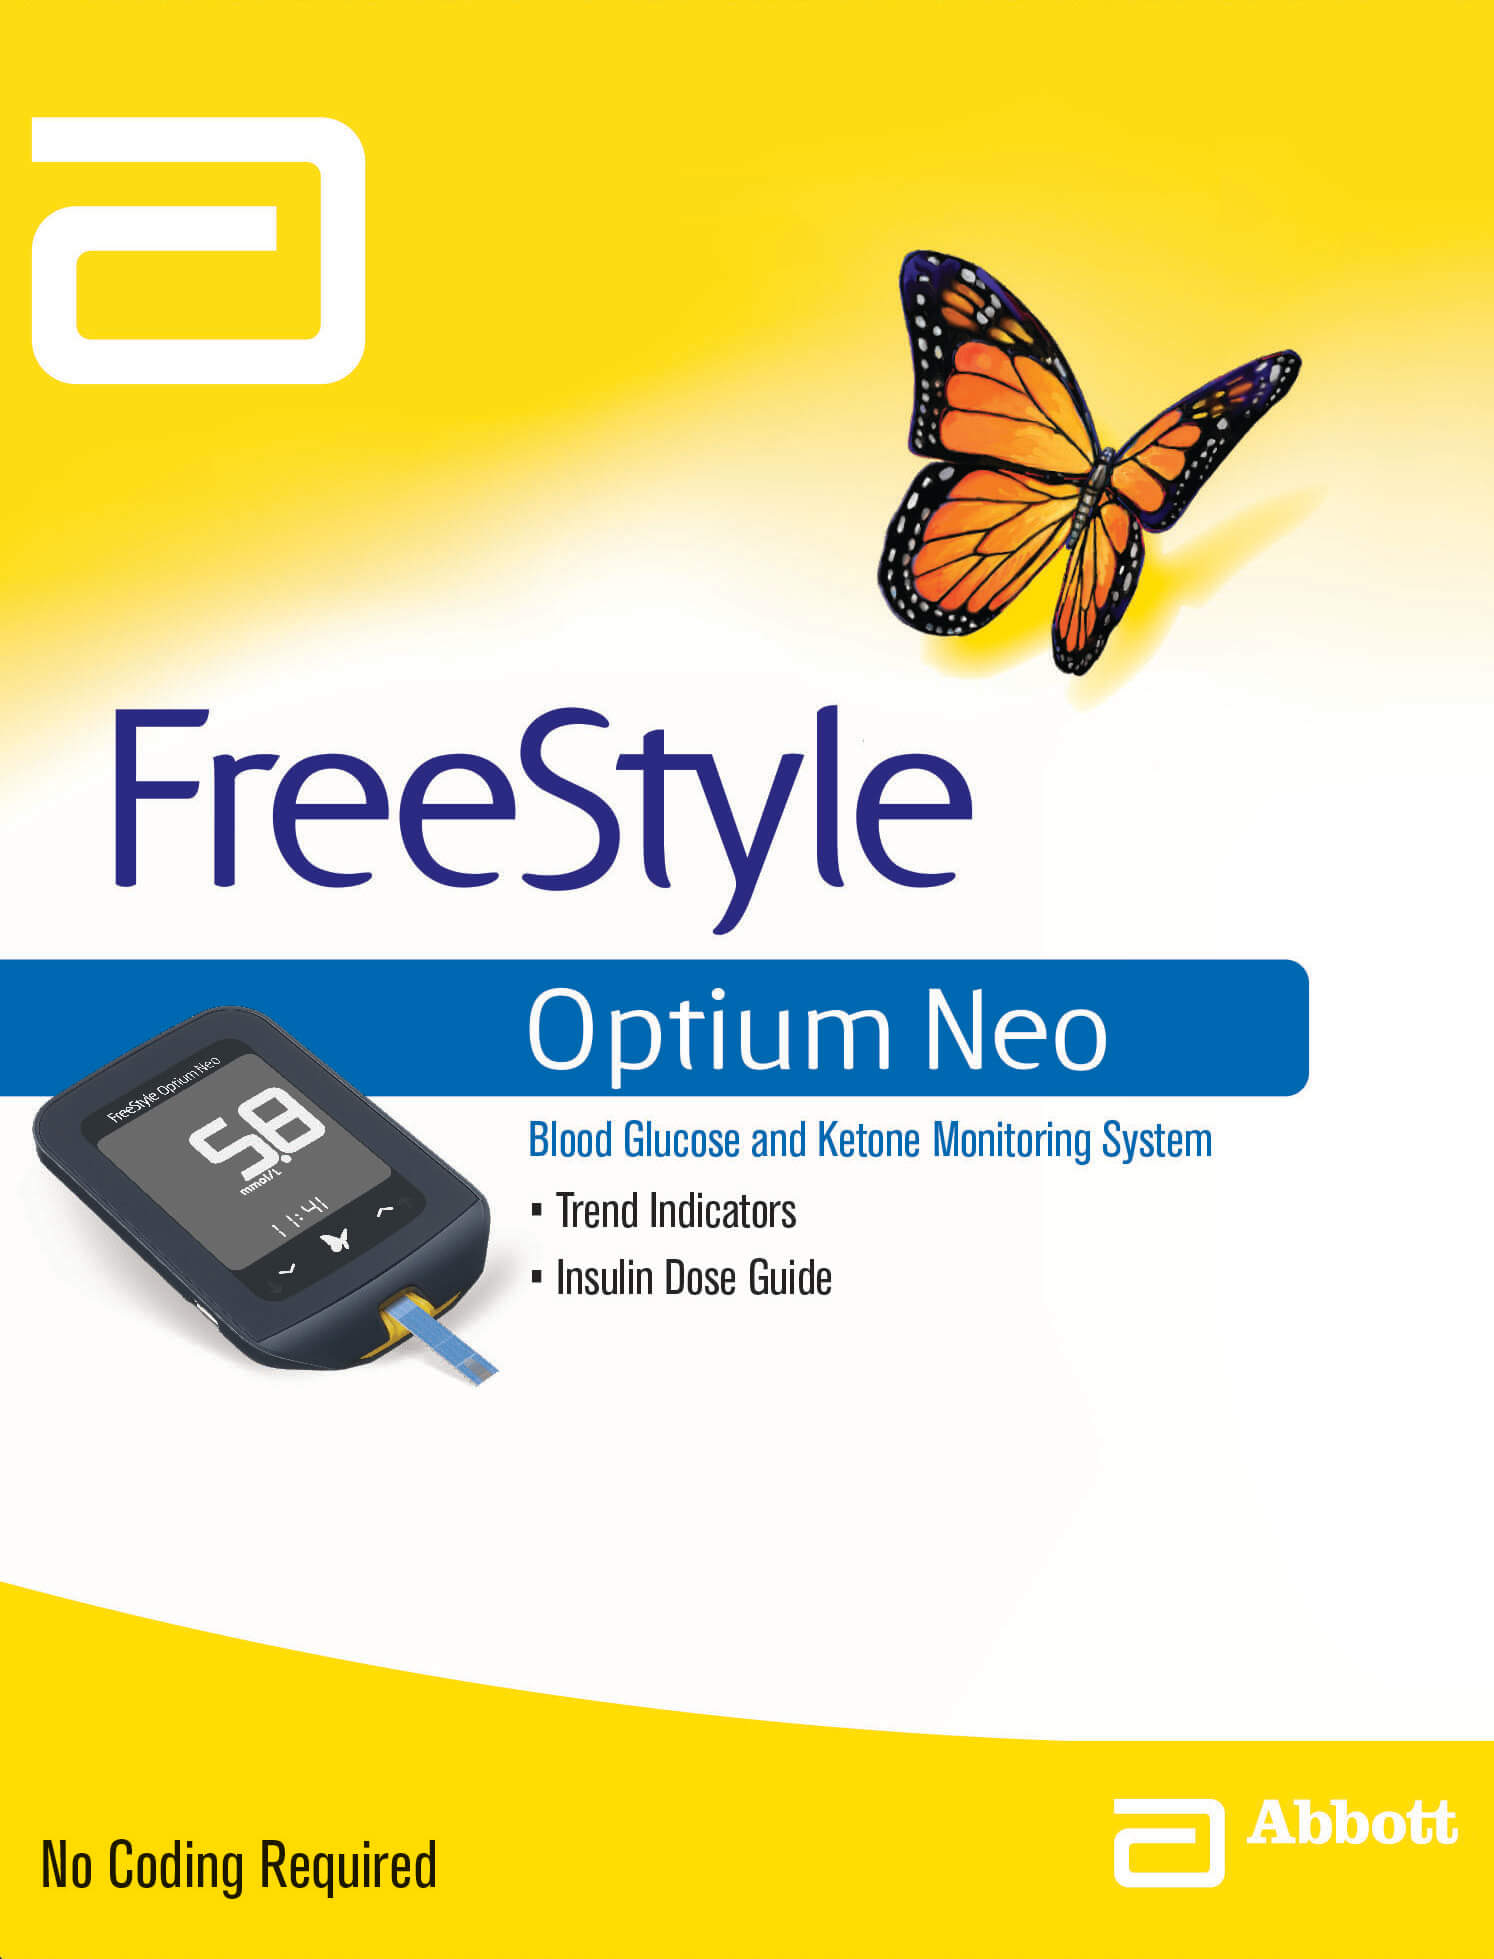 FreeStyle Optium Neo - Insulin set up